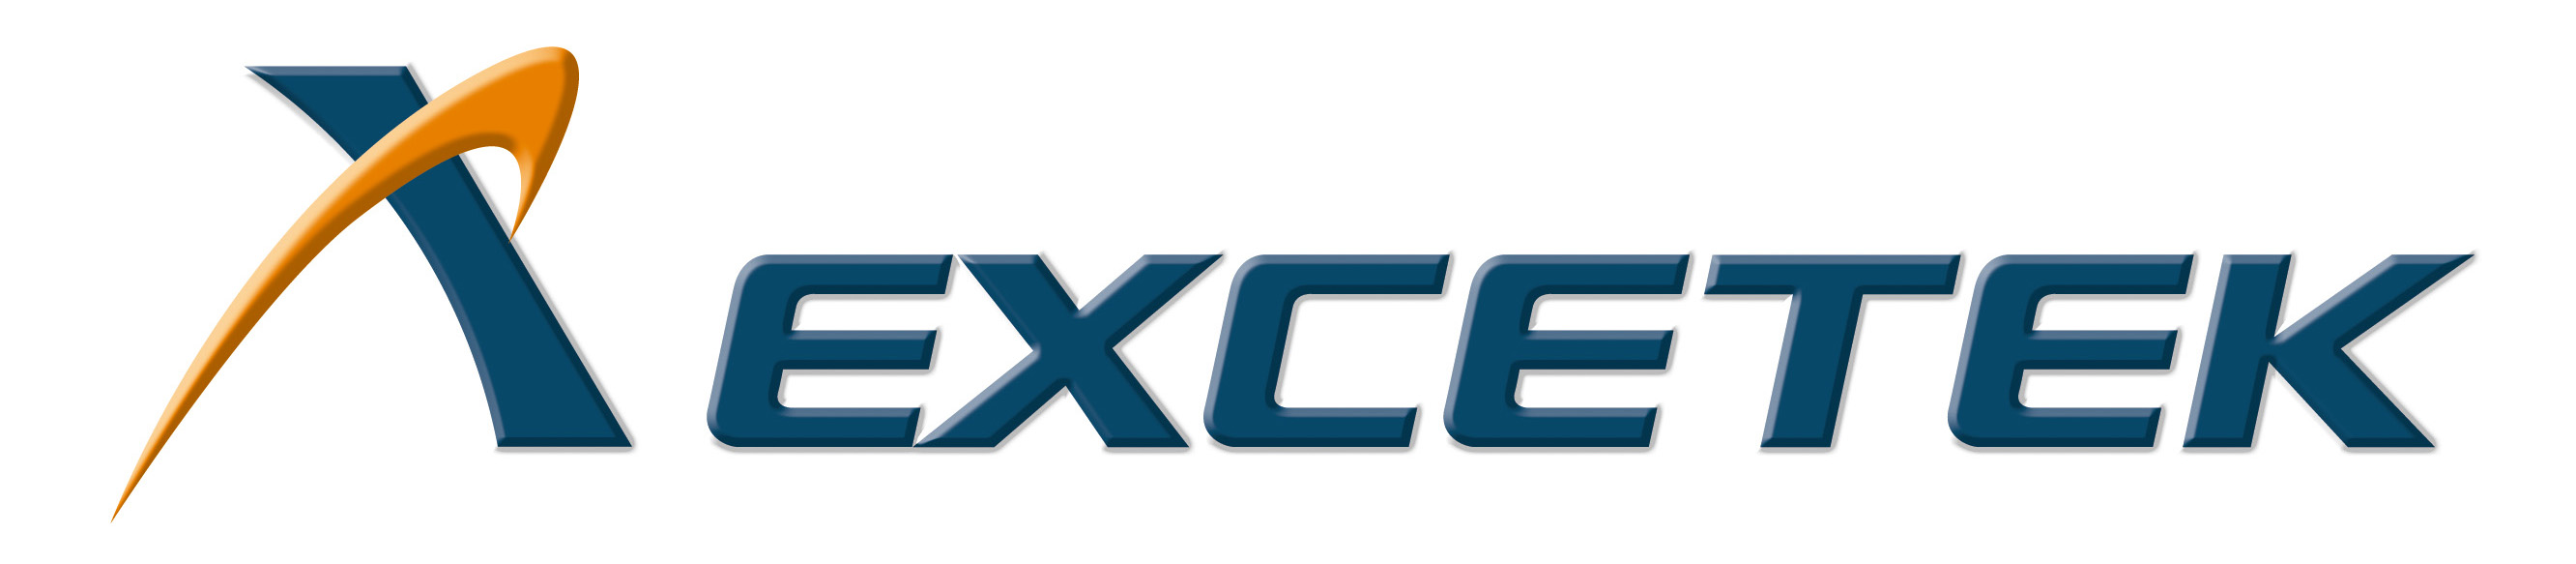 EXCETEK Technologies Co., Ltd.-Logo